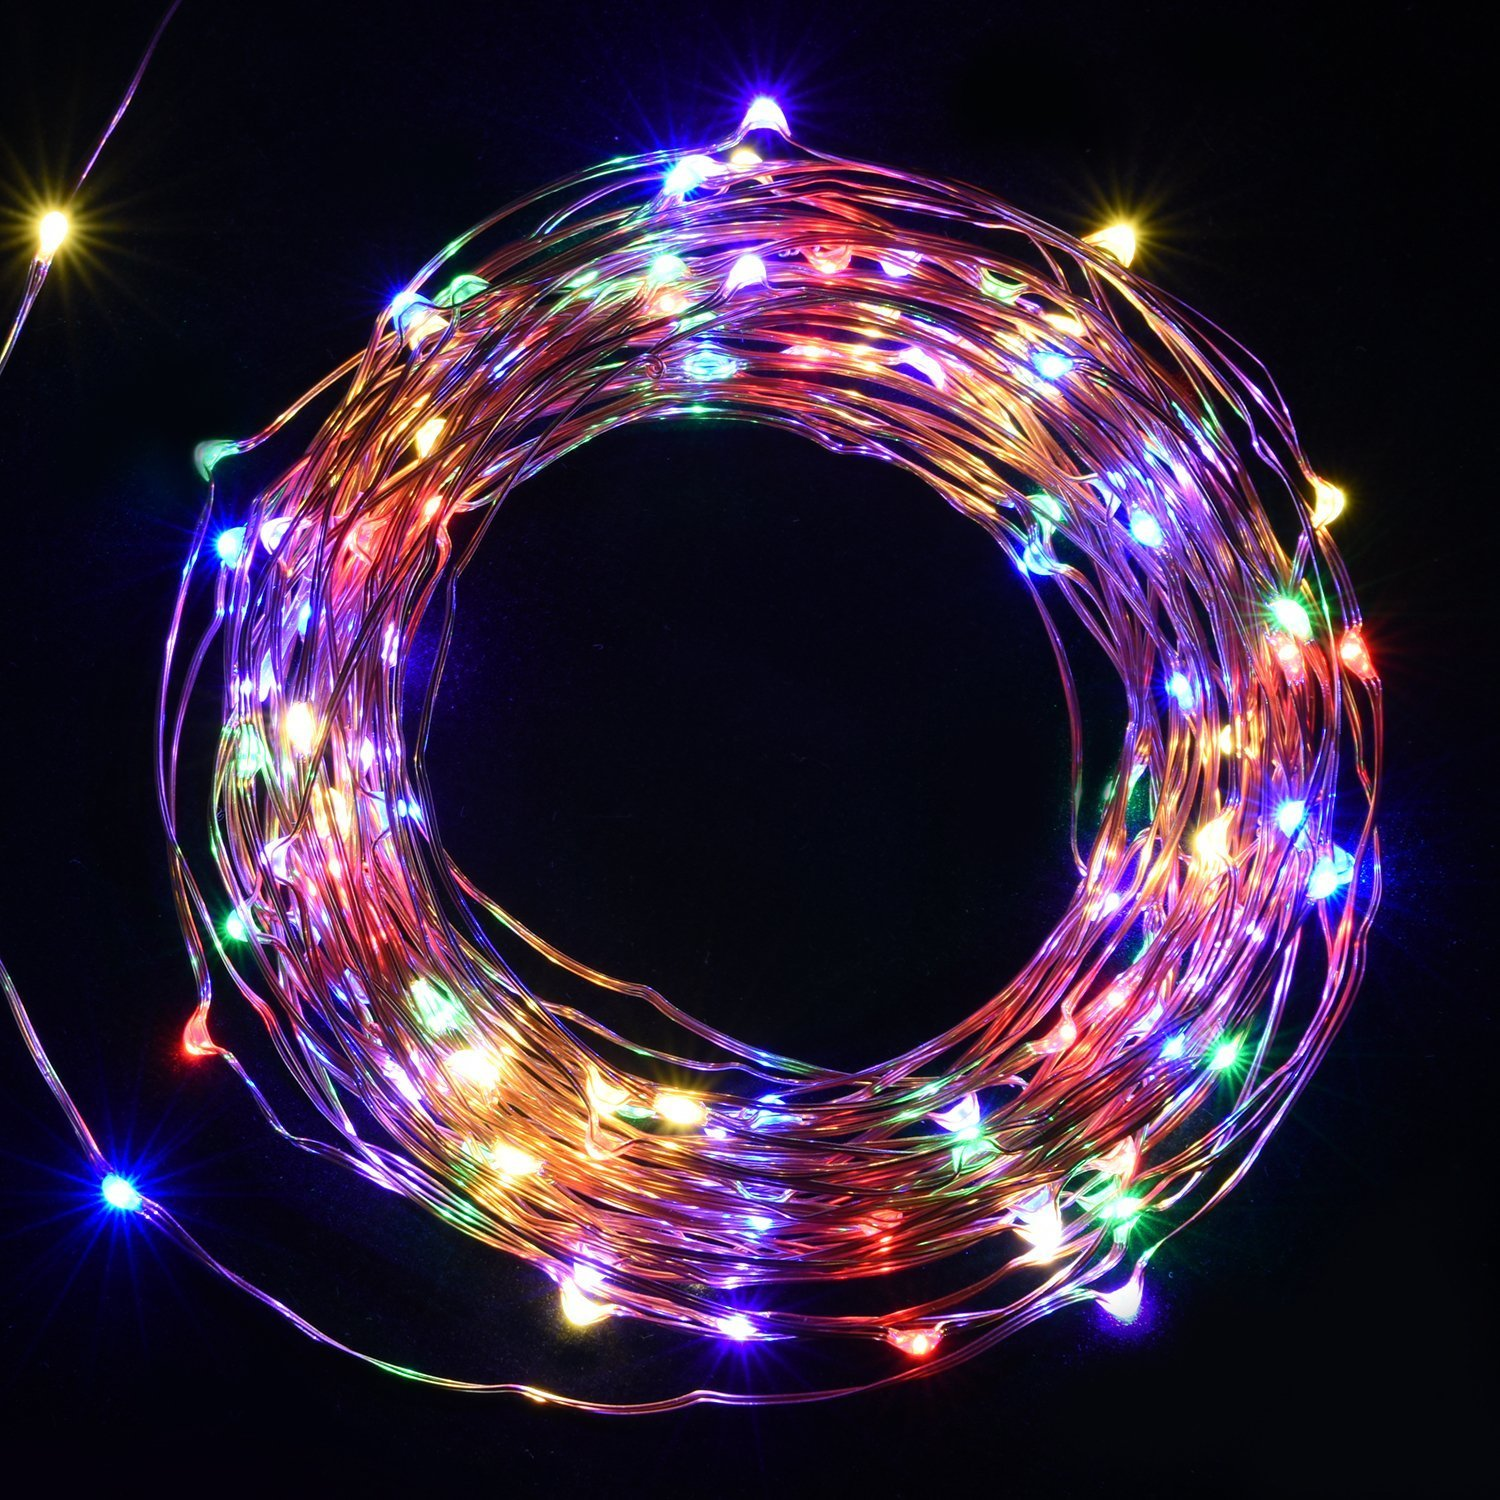 Garden FULLBELL 165 Feet 500 LED String Lights Copper Wire LED Lights Dimmable with Remote Control Waterproof Fairy Lights Outdoor for Patio Warm White Indoor and Outdoor Decorations Lawn